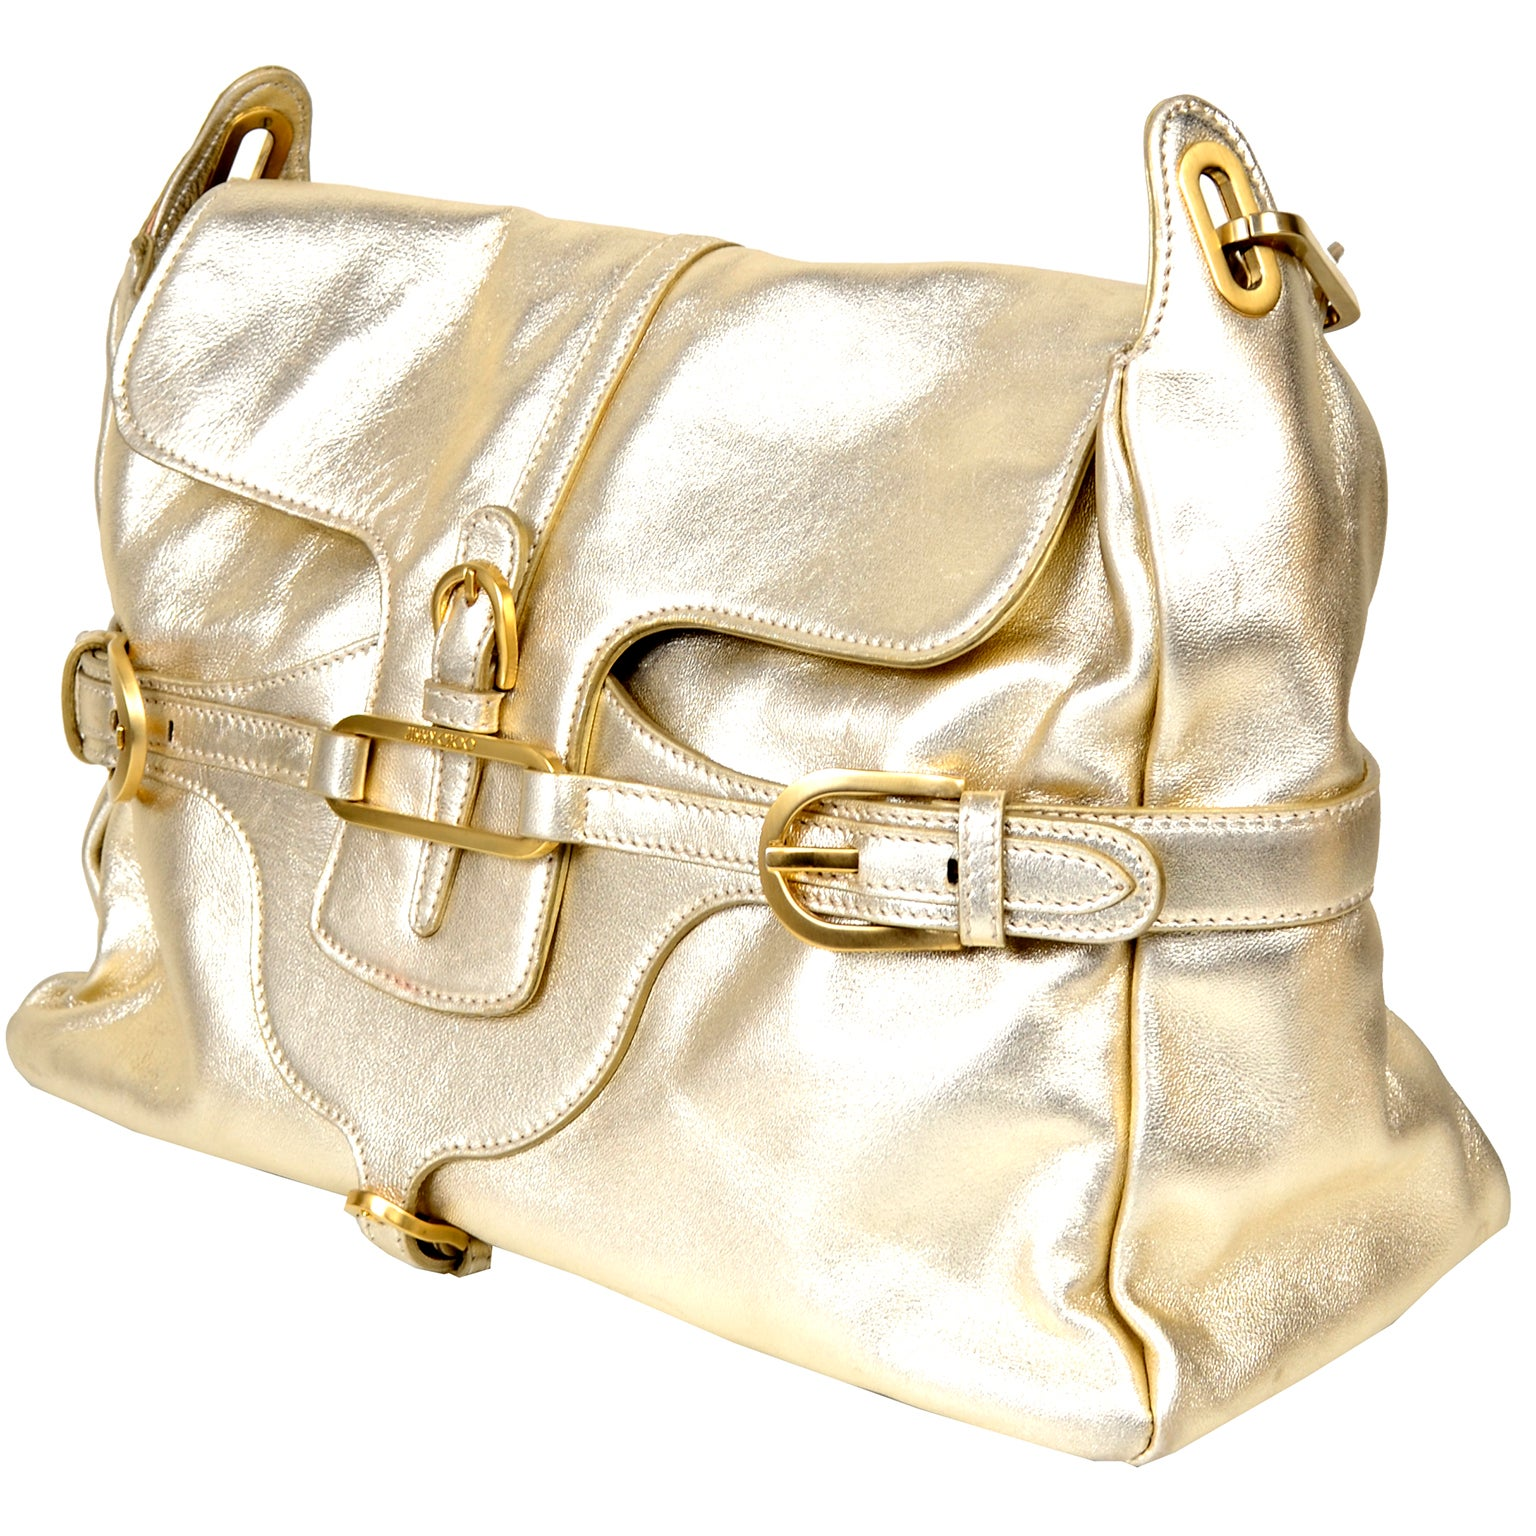 Jimmy Choo Vintage Gold Leather Hobo Bag Handbag